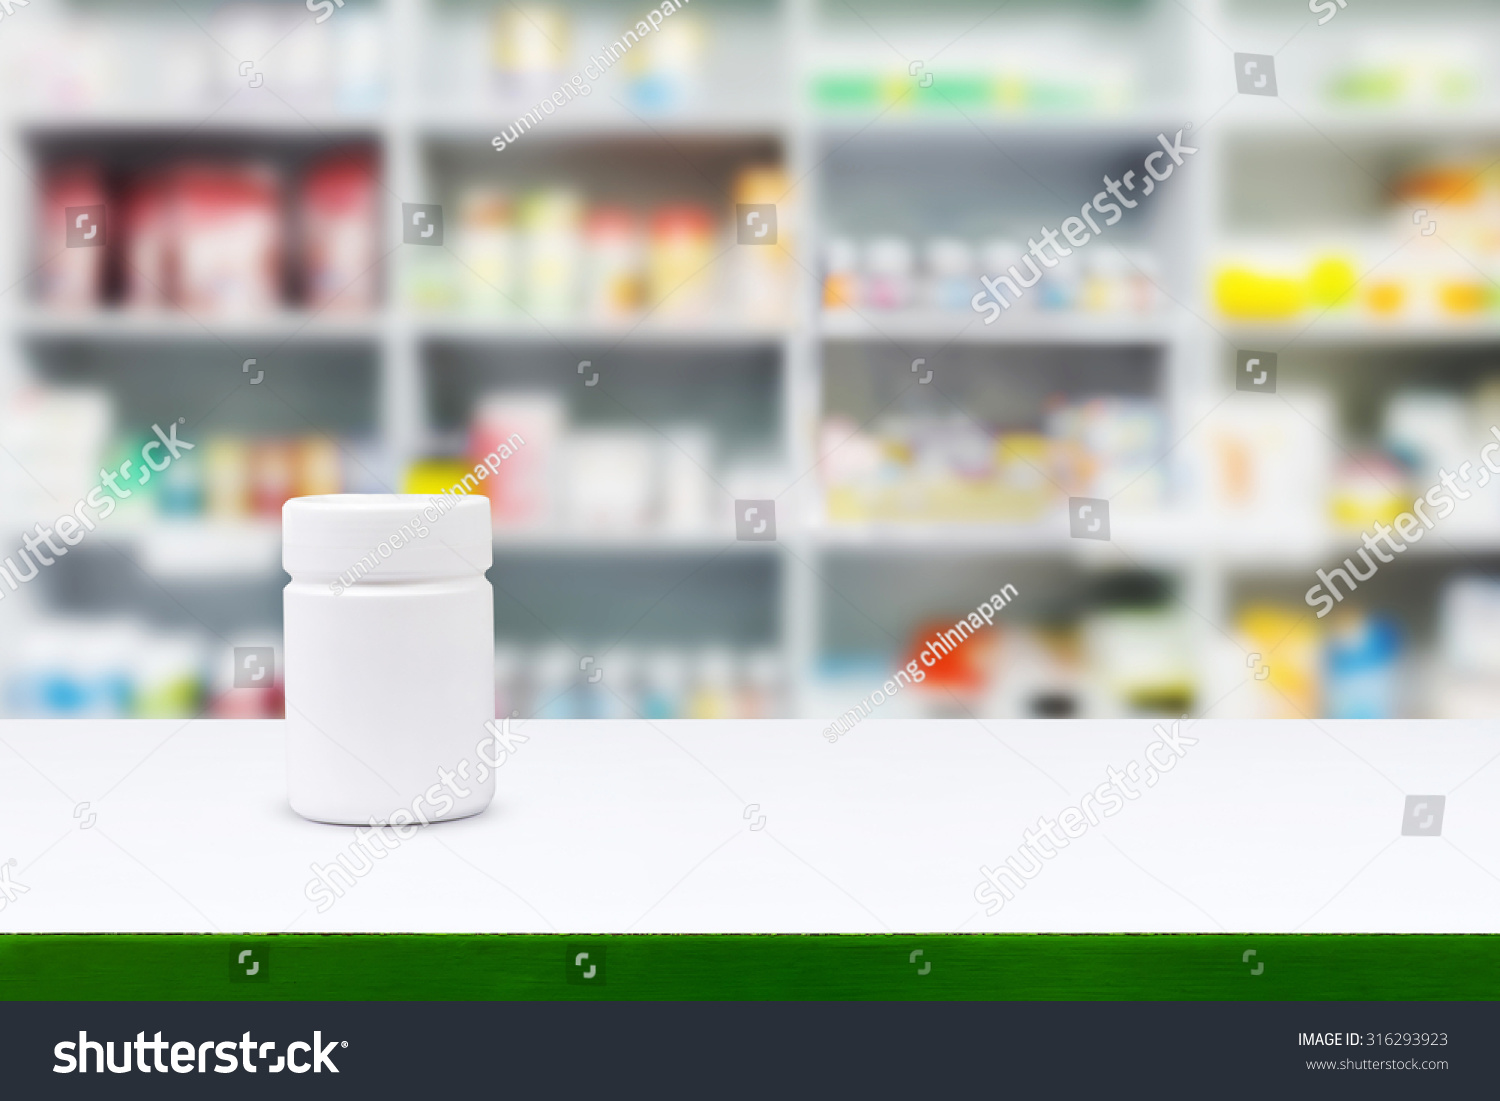 Blank white medicine bottle on counter with blur shelves of drug in the pharmacy drugstore background